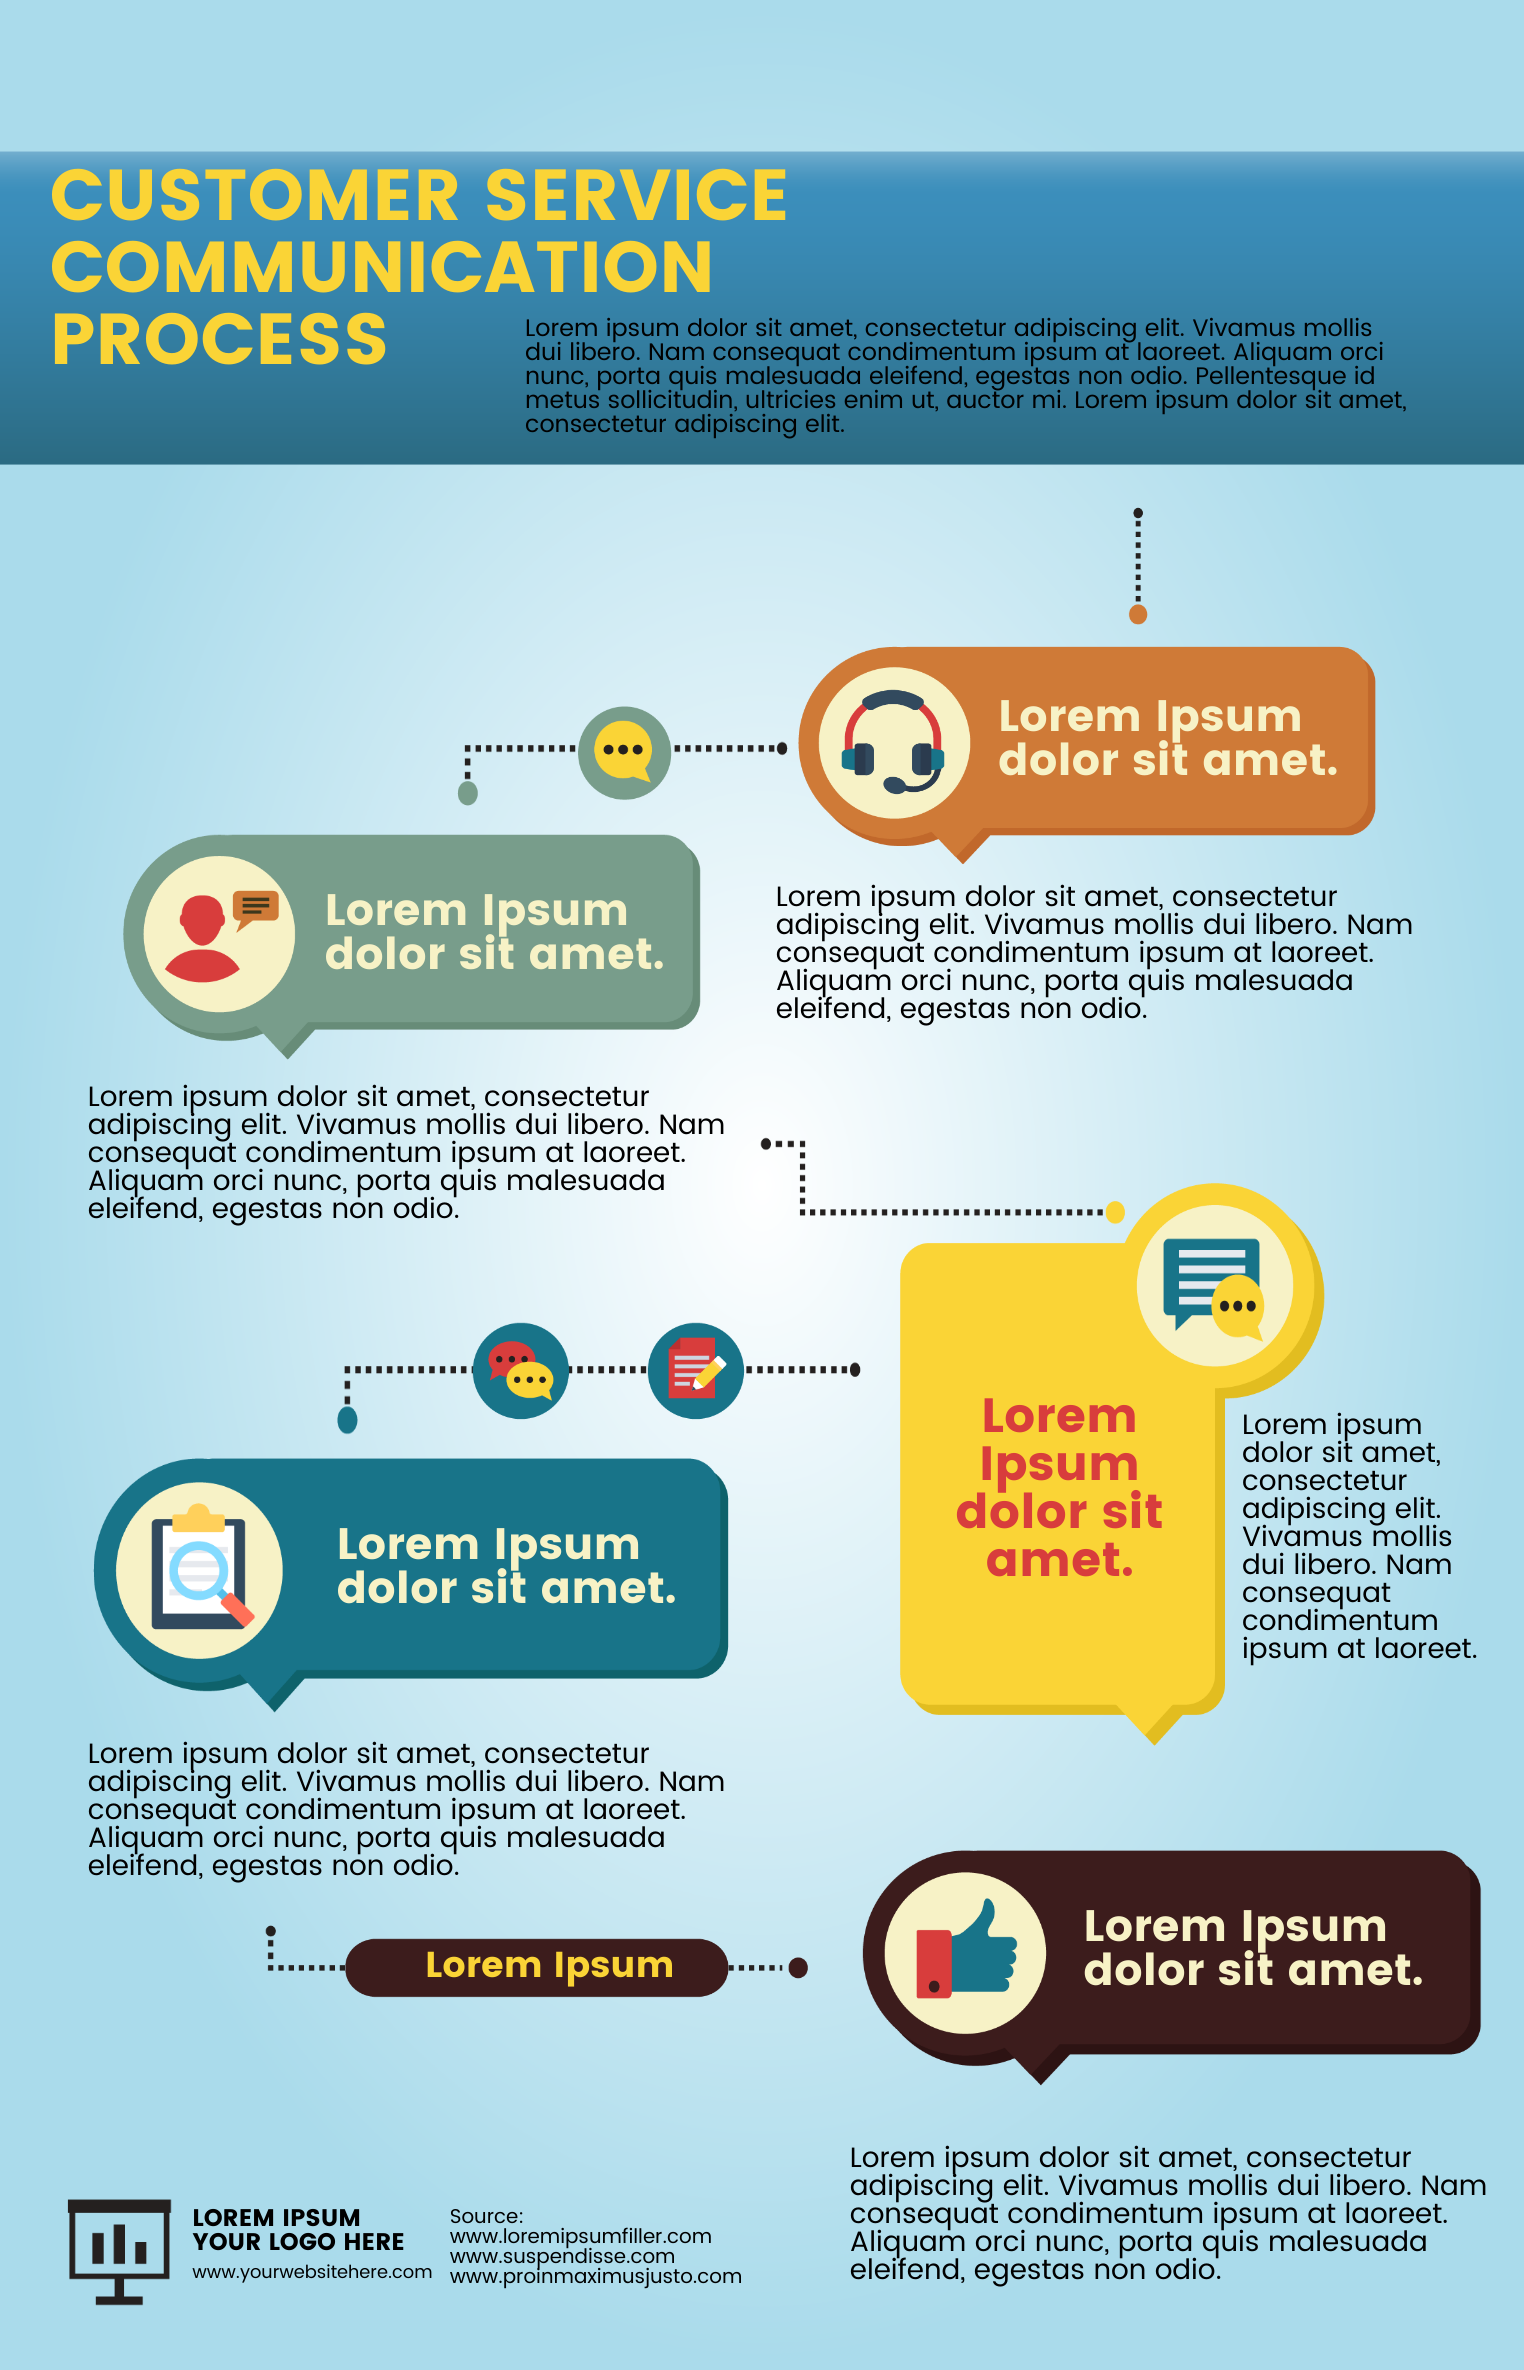 An infographic about the customer service communication process